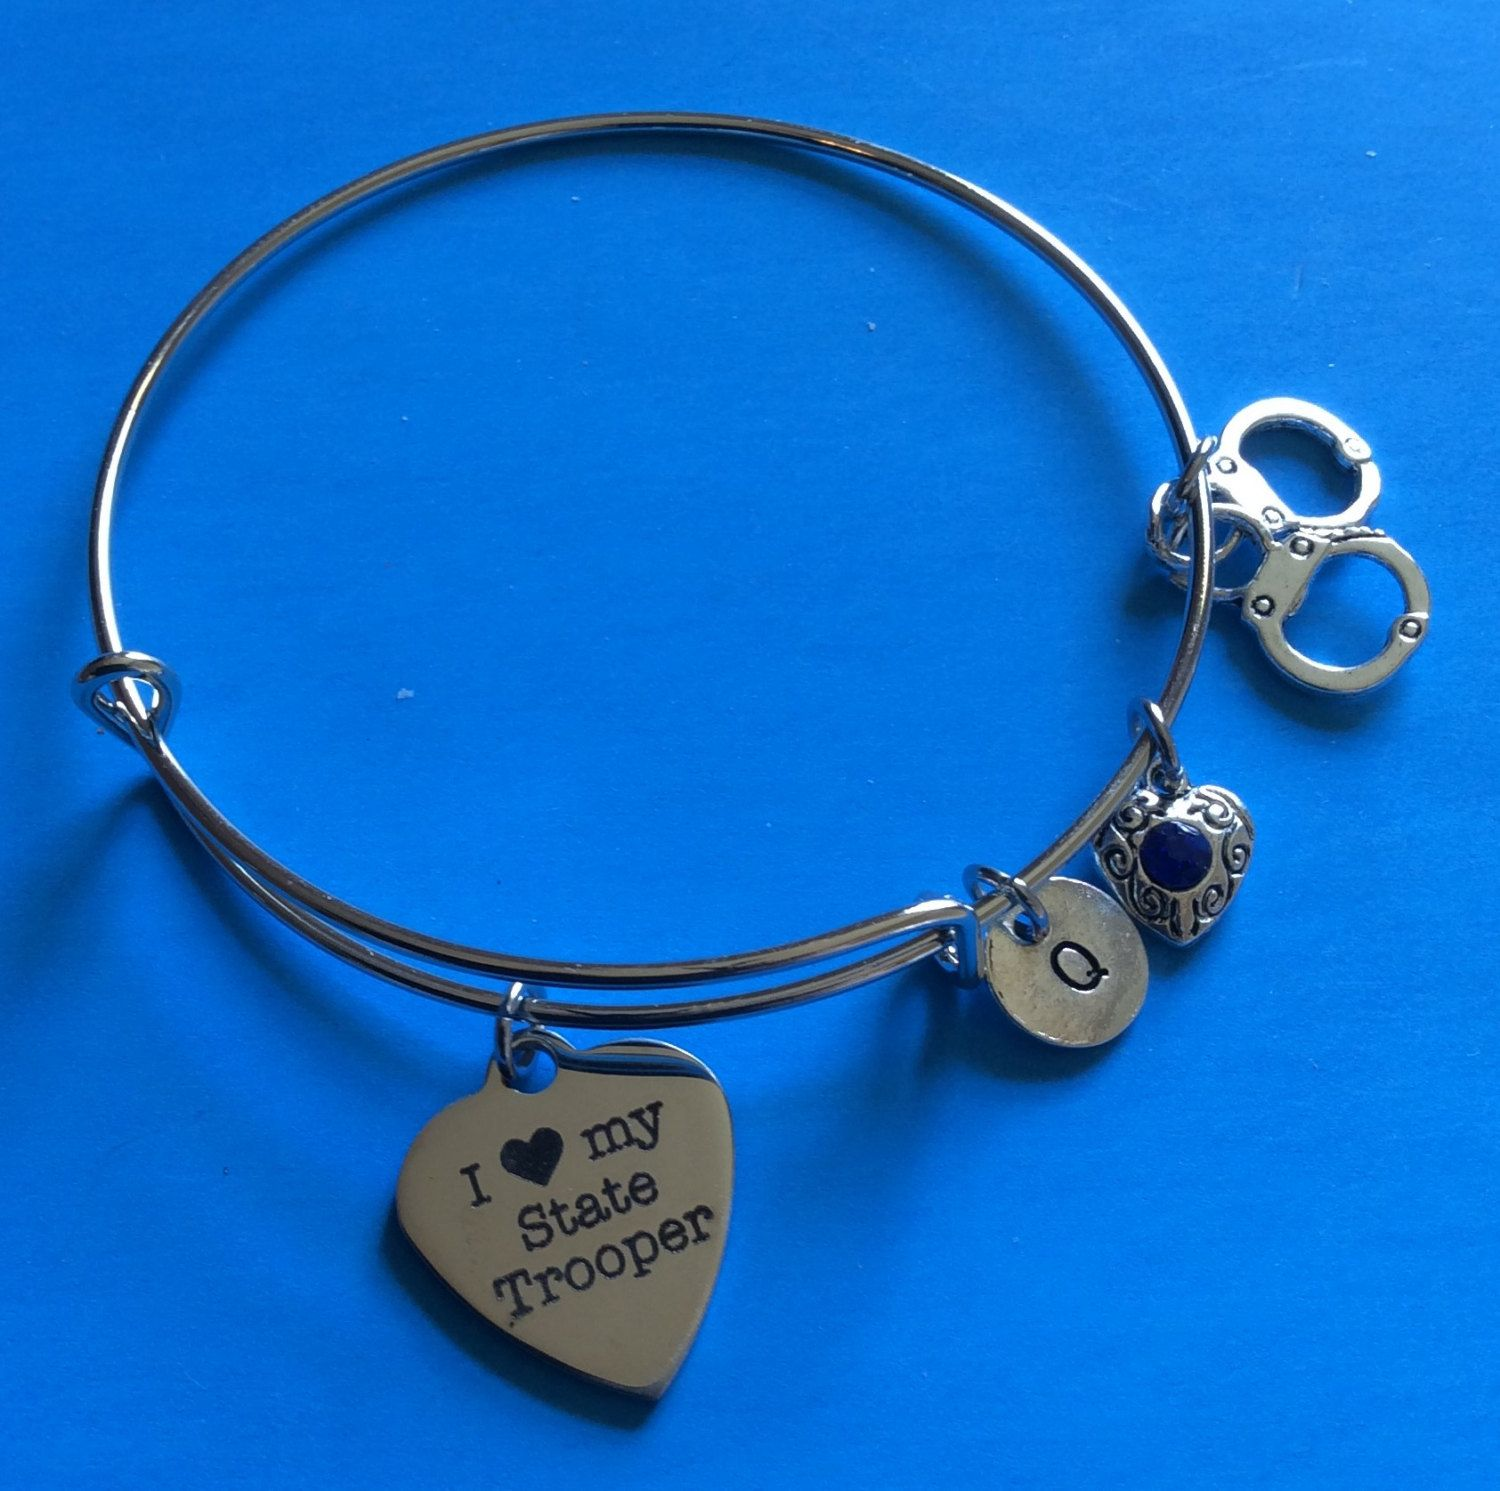 9e7d3fa585a08 State Trooper Charm Bracelet,Personalized, Police Wife Gift, Gift ...